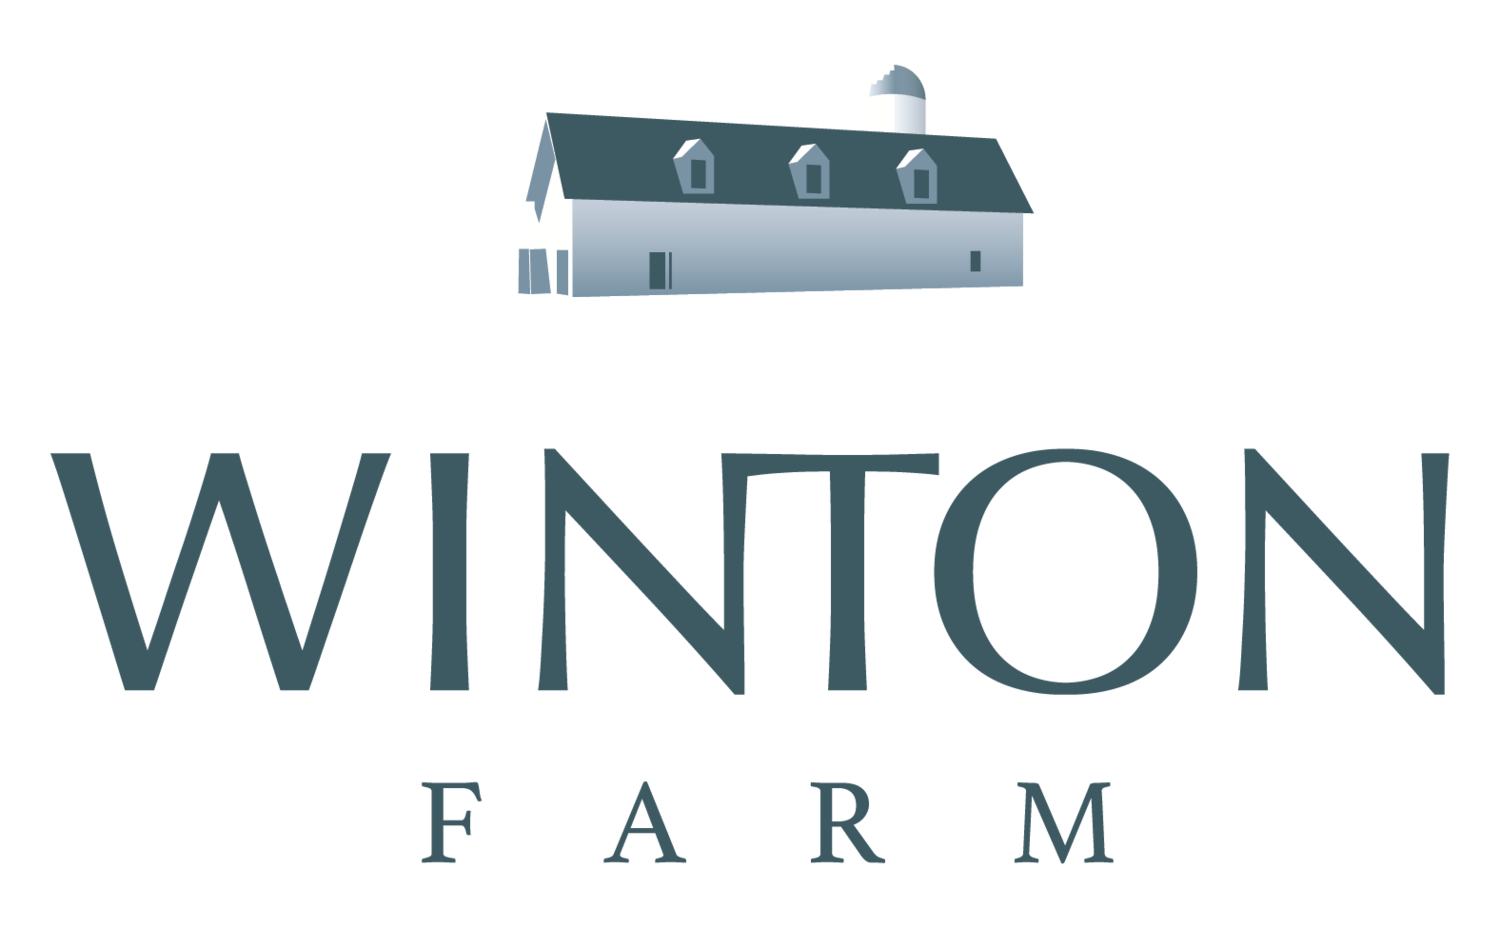 Winton Farm